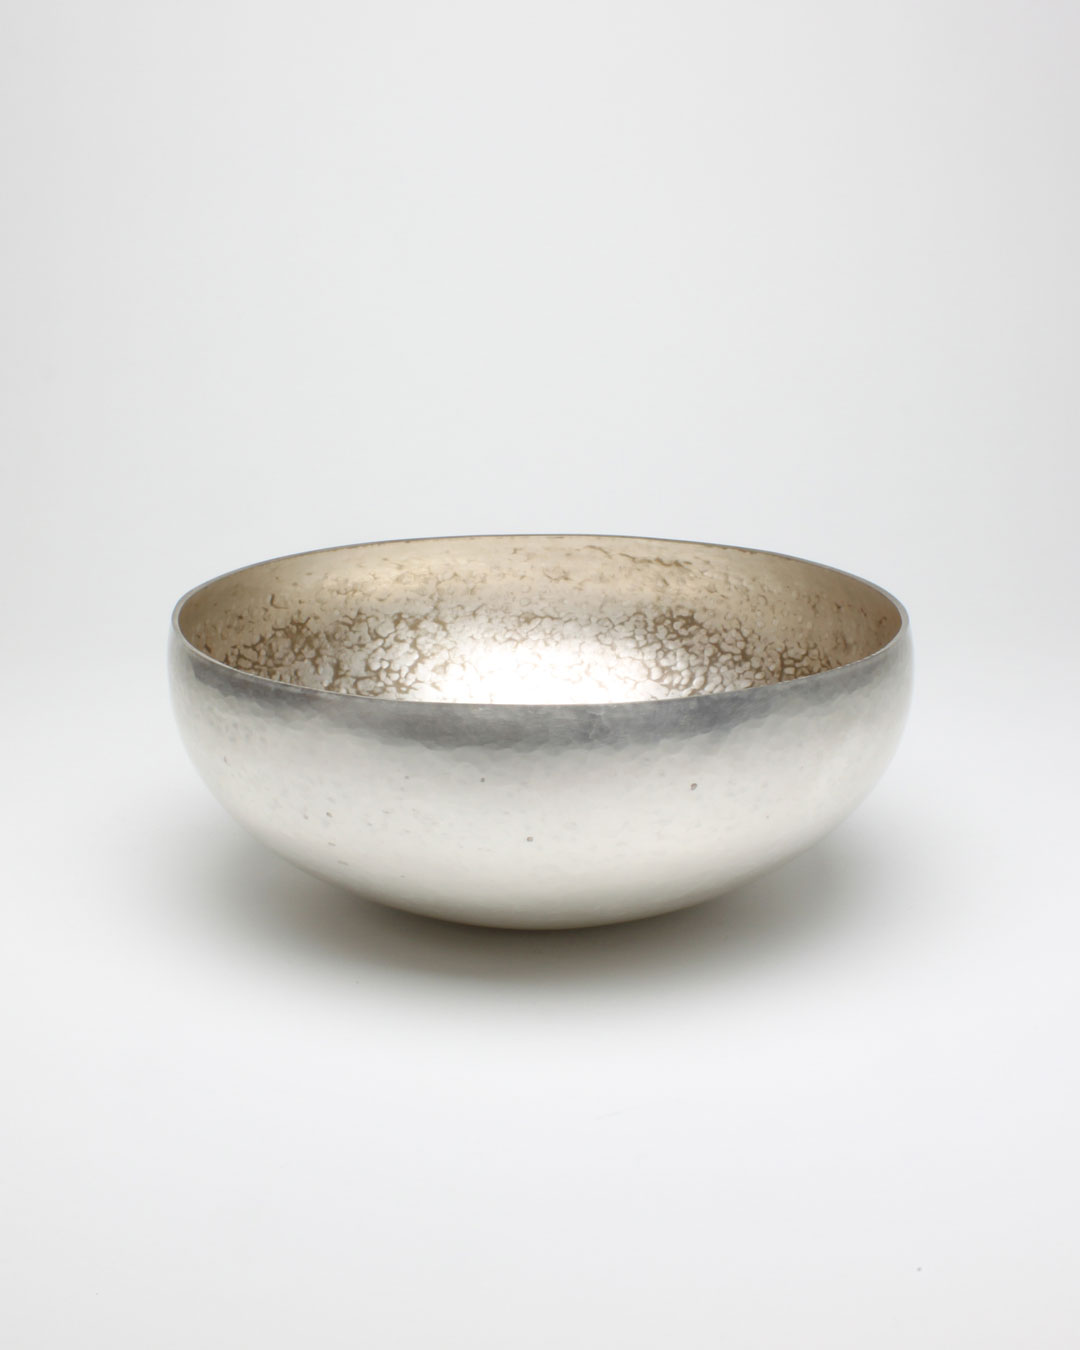 Cóilín Ó Dubhghaill, Ceo 10, 2014, bowl; silver alloy, copper alloy, 90 x 225 x 225 mm, €5300